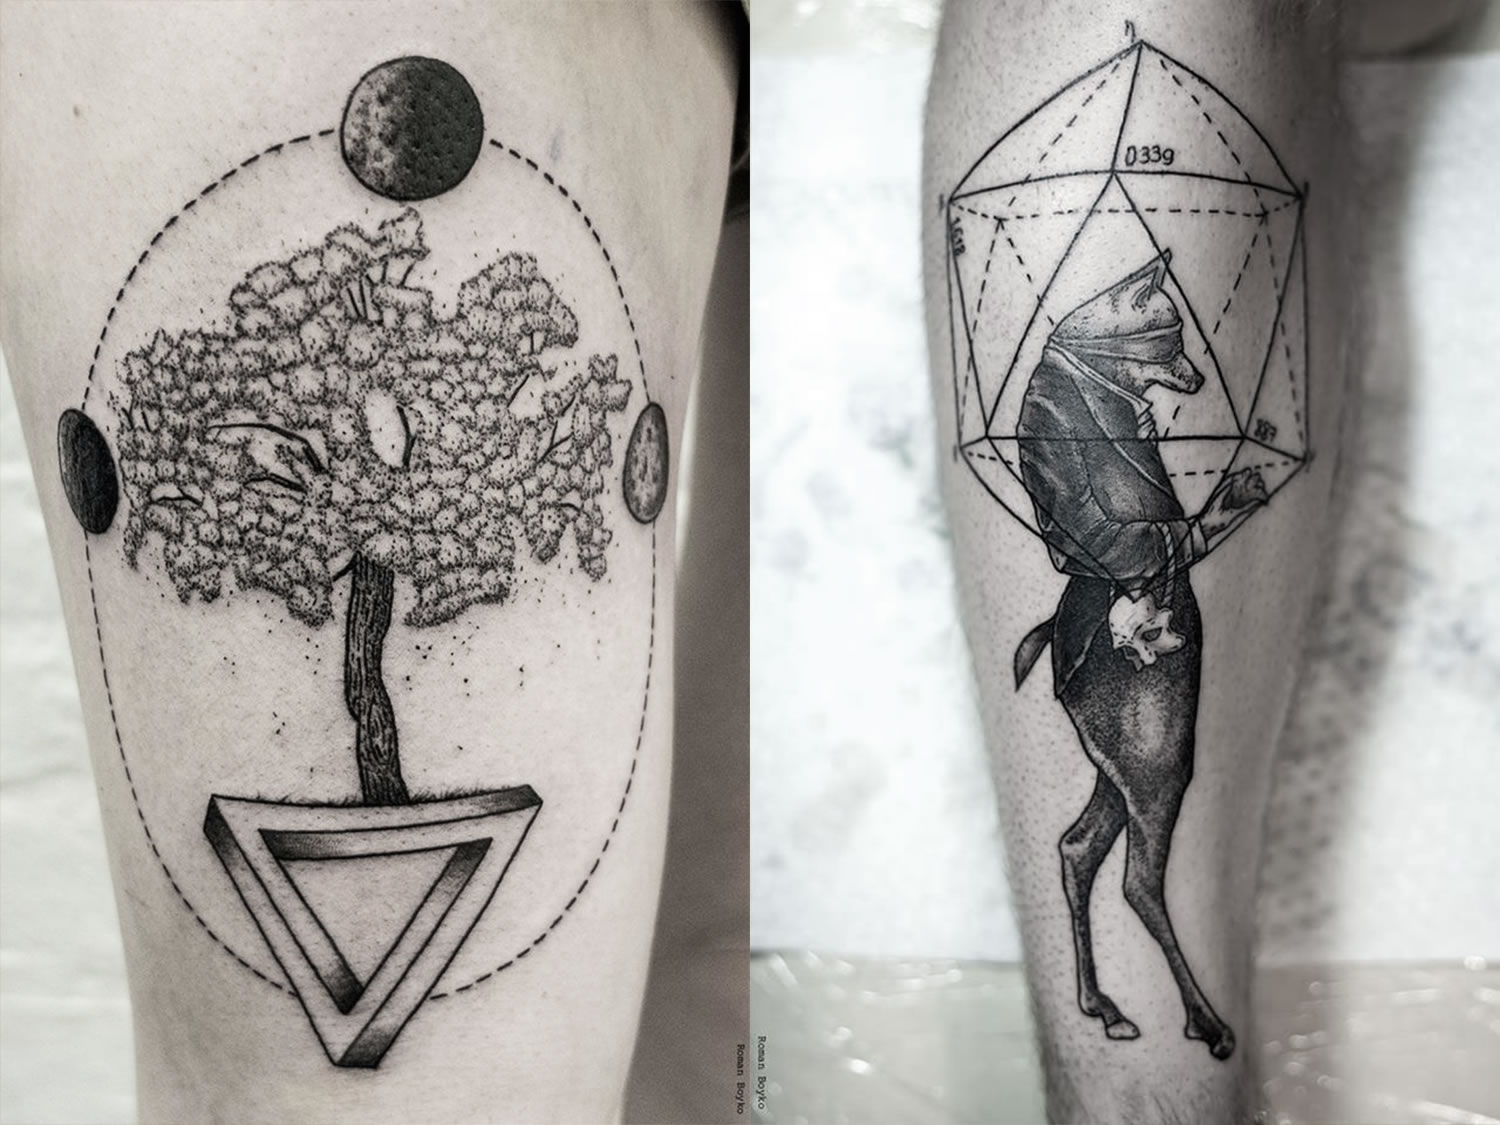 trre and impososible triangle and fox tattoos by by roman boyko